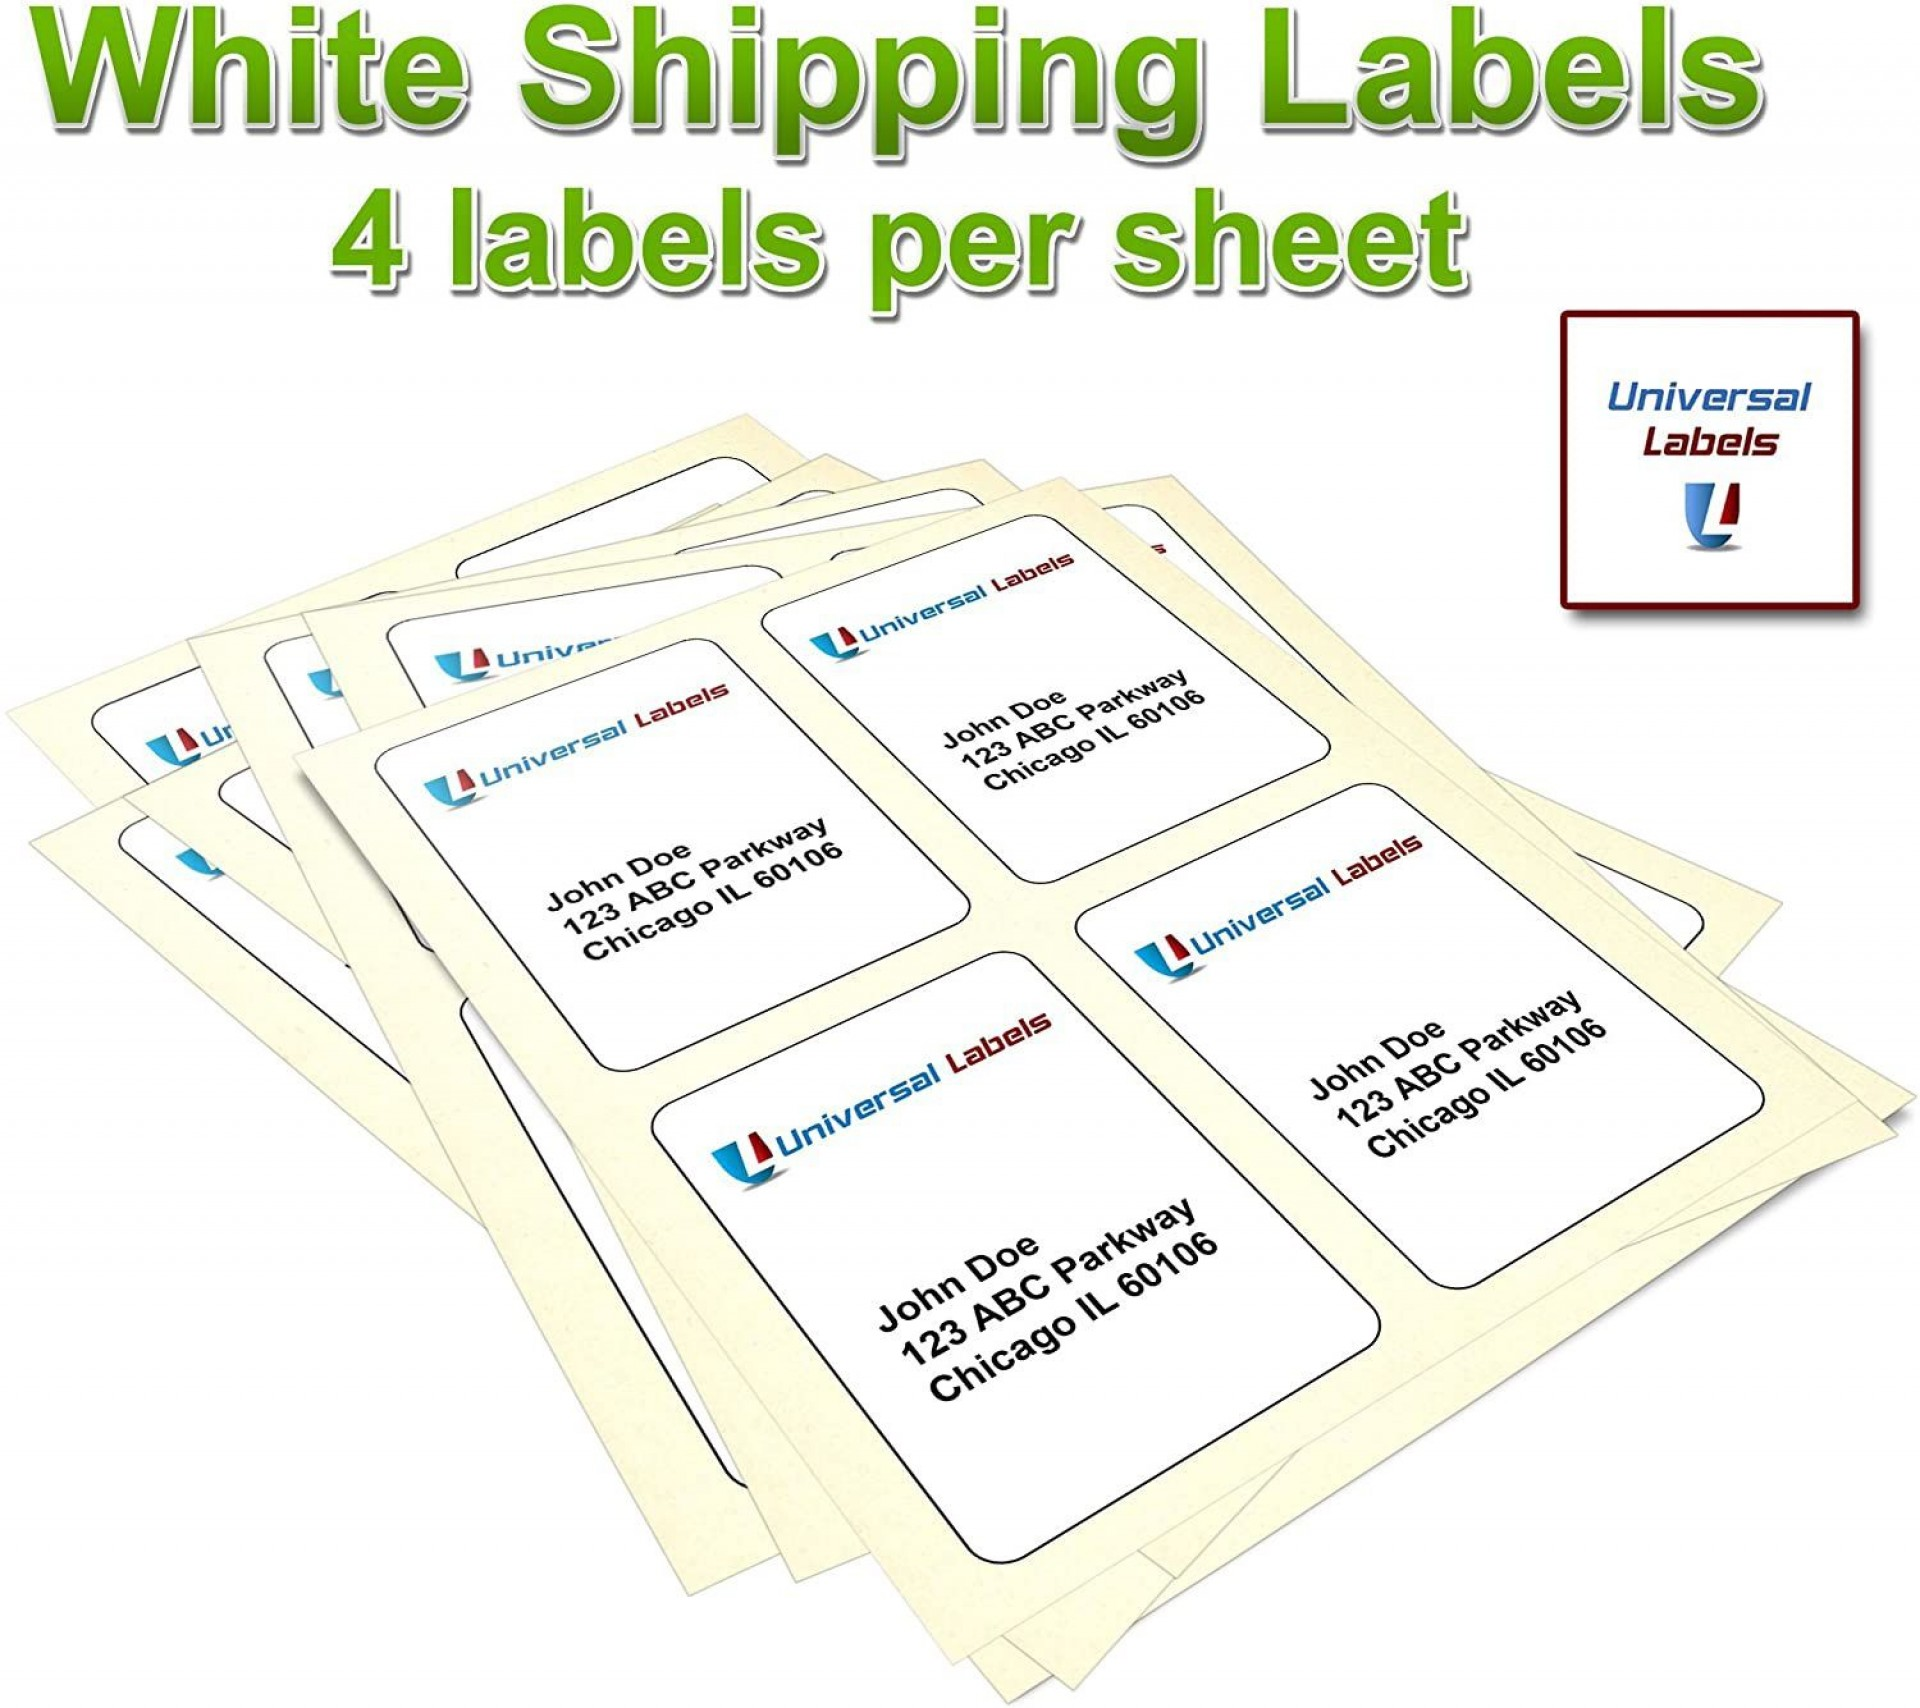 002 Sensational 4x6 Shipping Label Template Word High Definition 1920